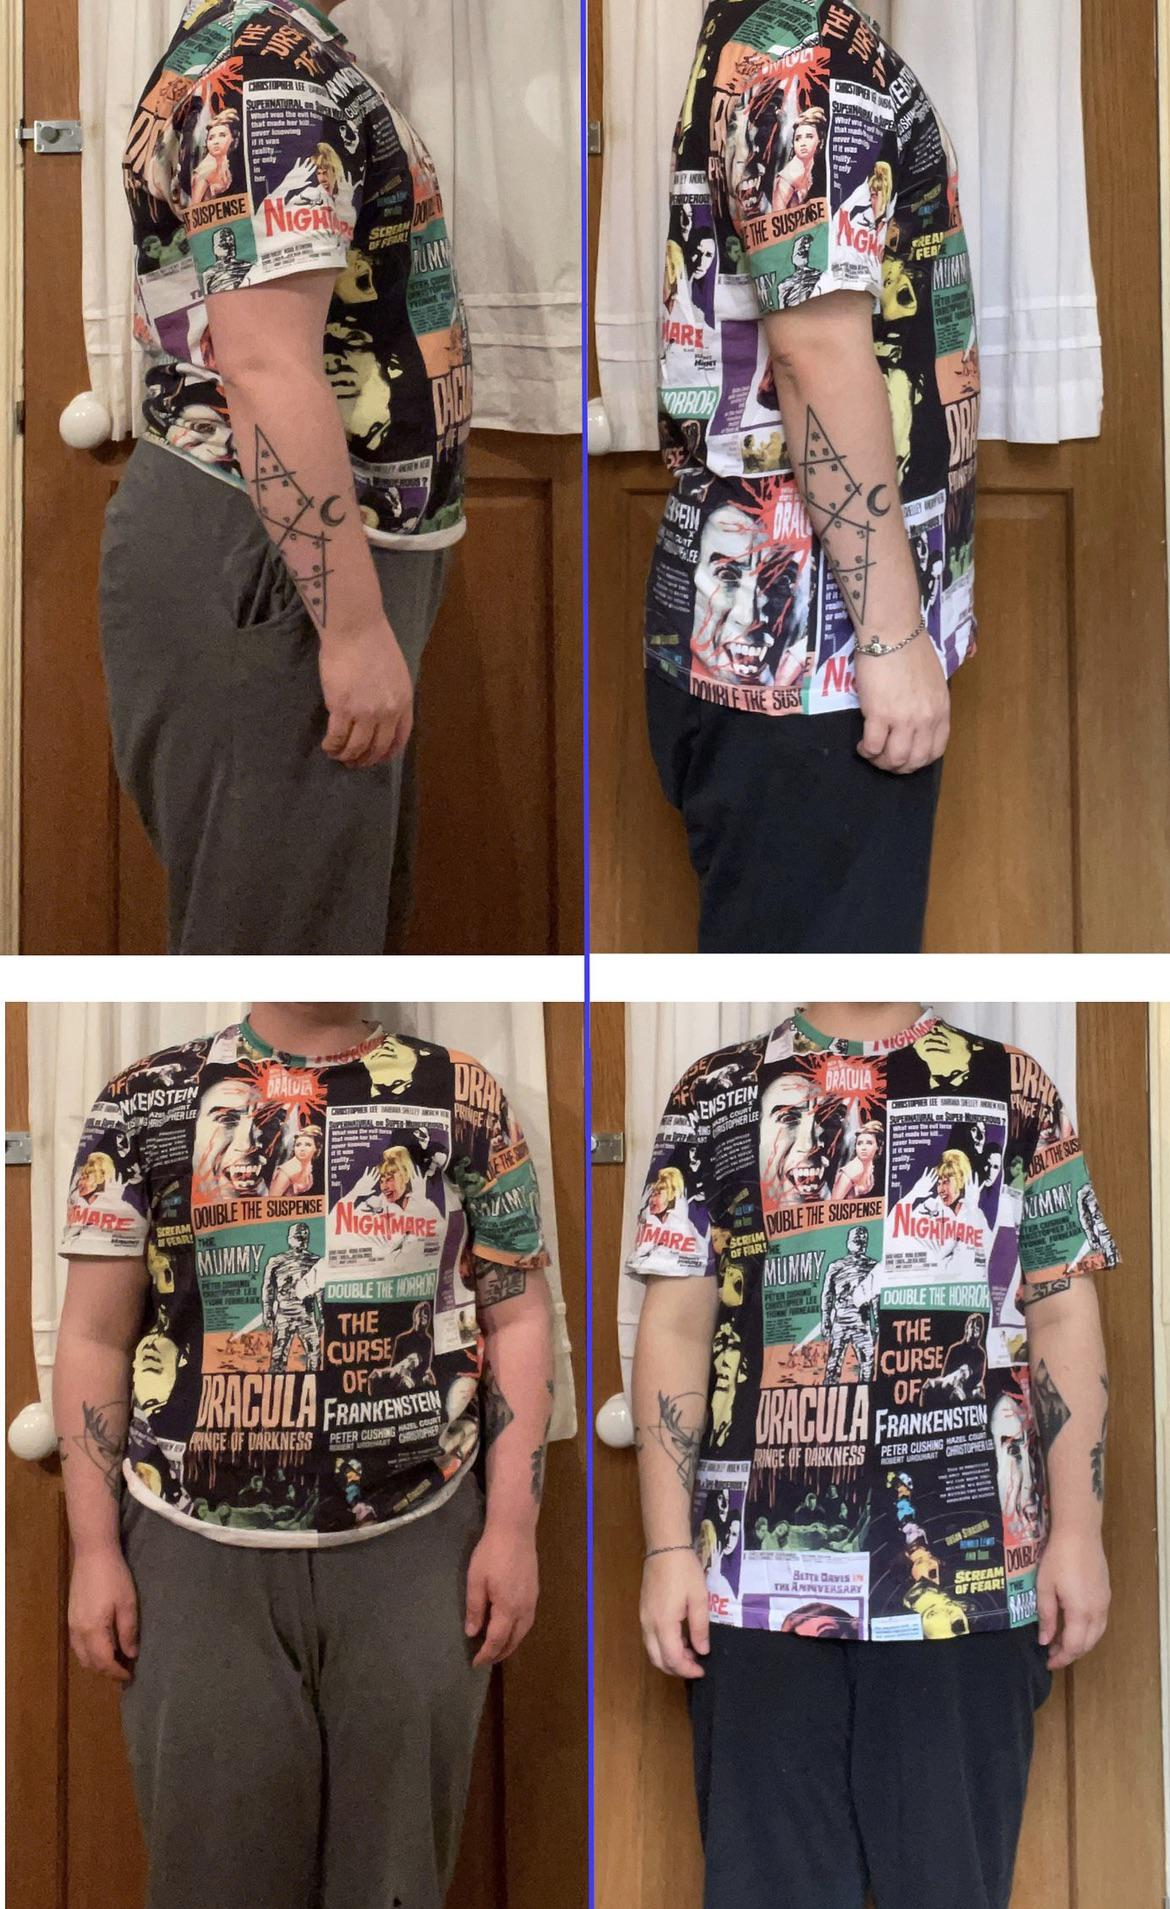 5 foot 5 Male 34 lbs Fat Loss Before and After 209 lbs to 175 lbs